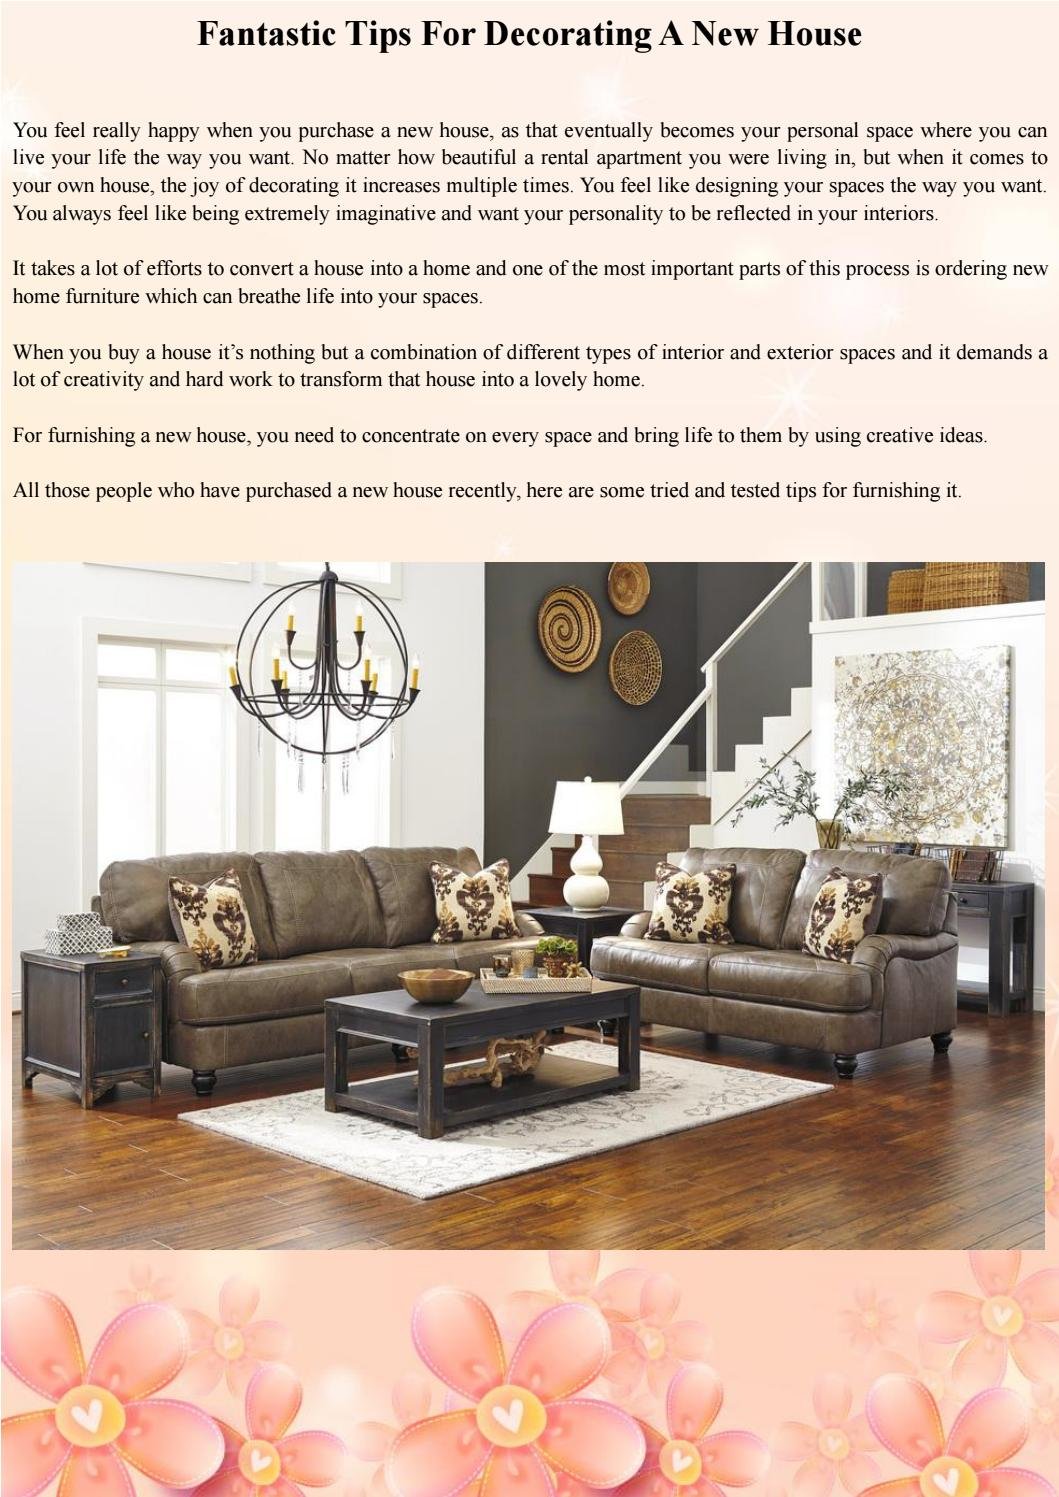 Fantastic Tips For Decorating A New House By Furniture Store LA   Issuu